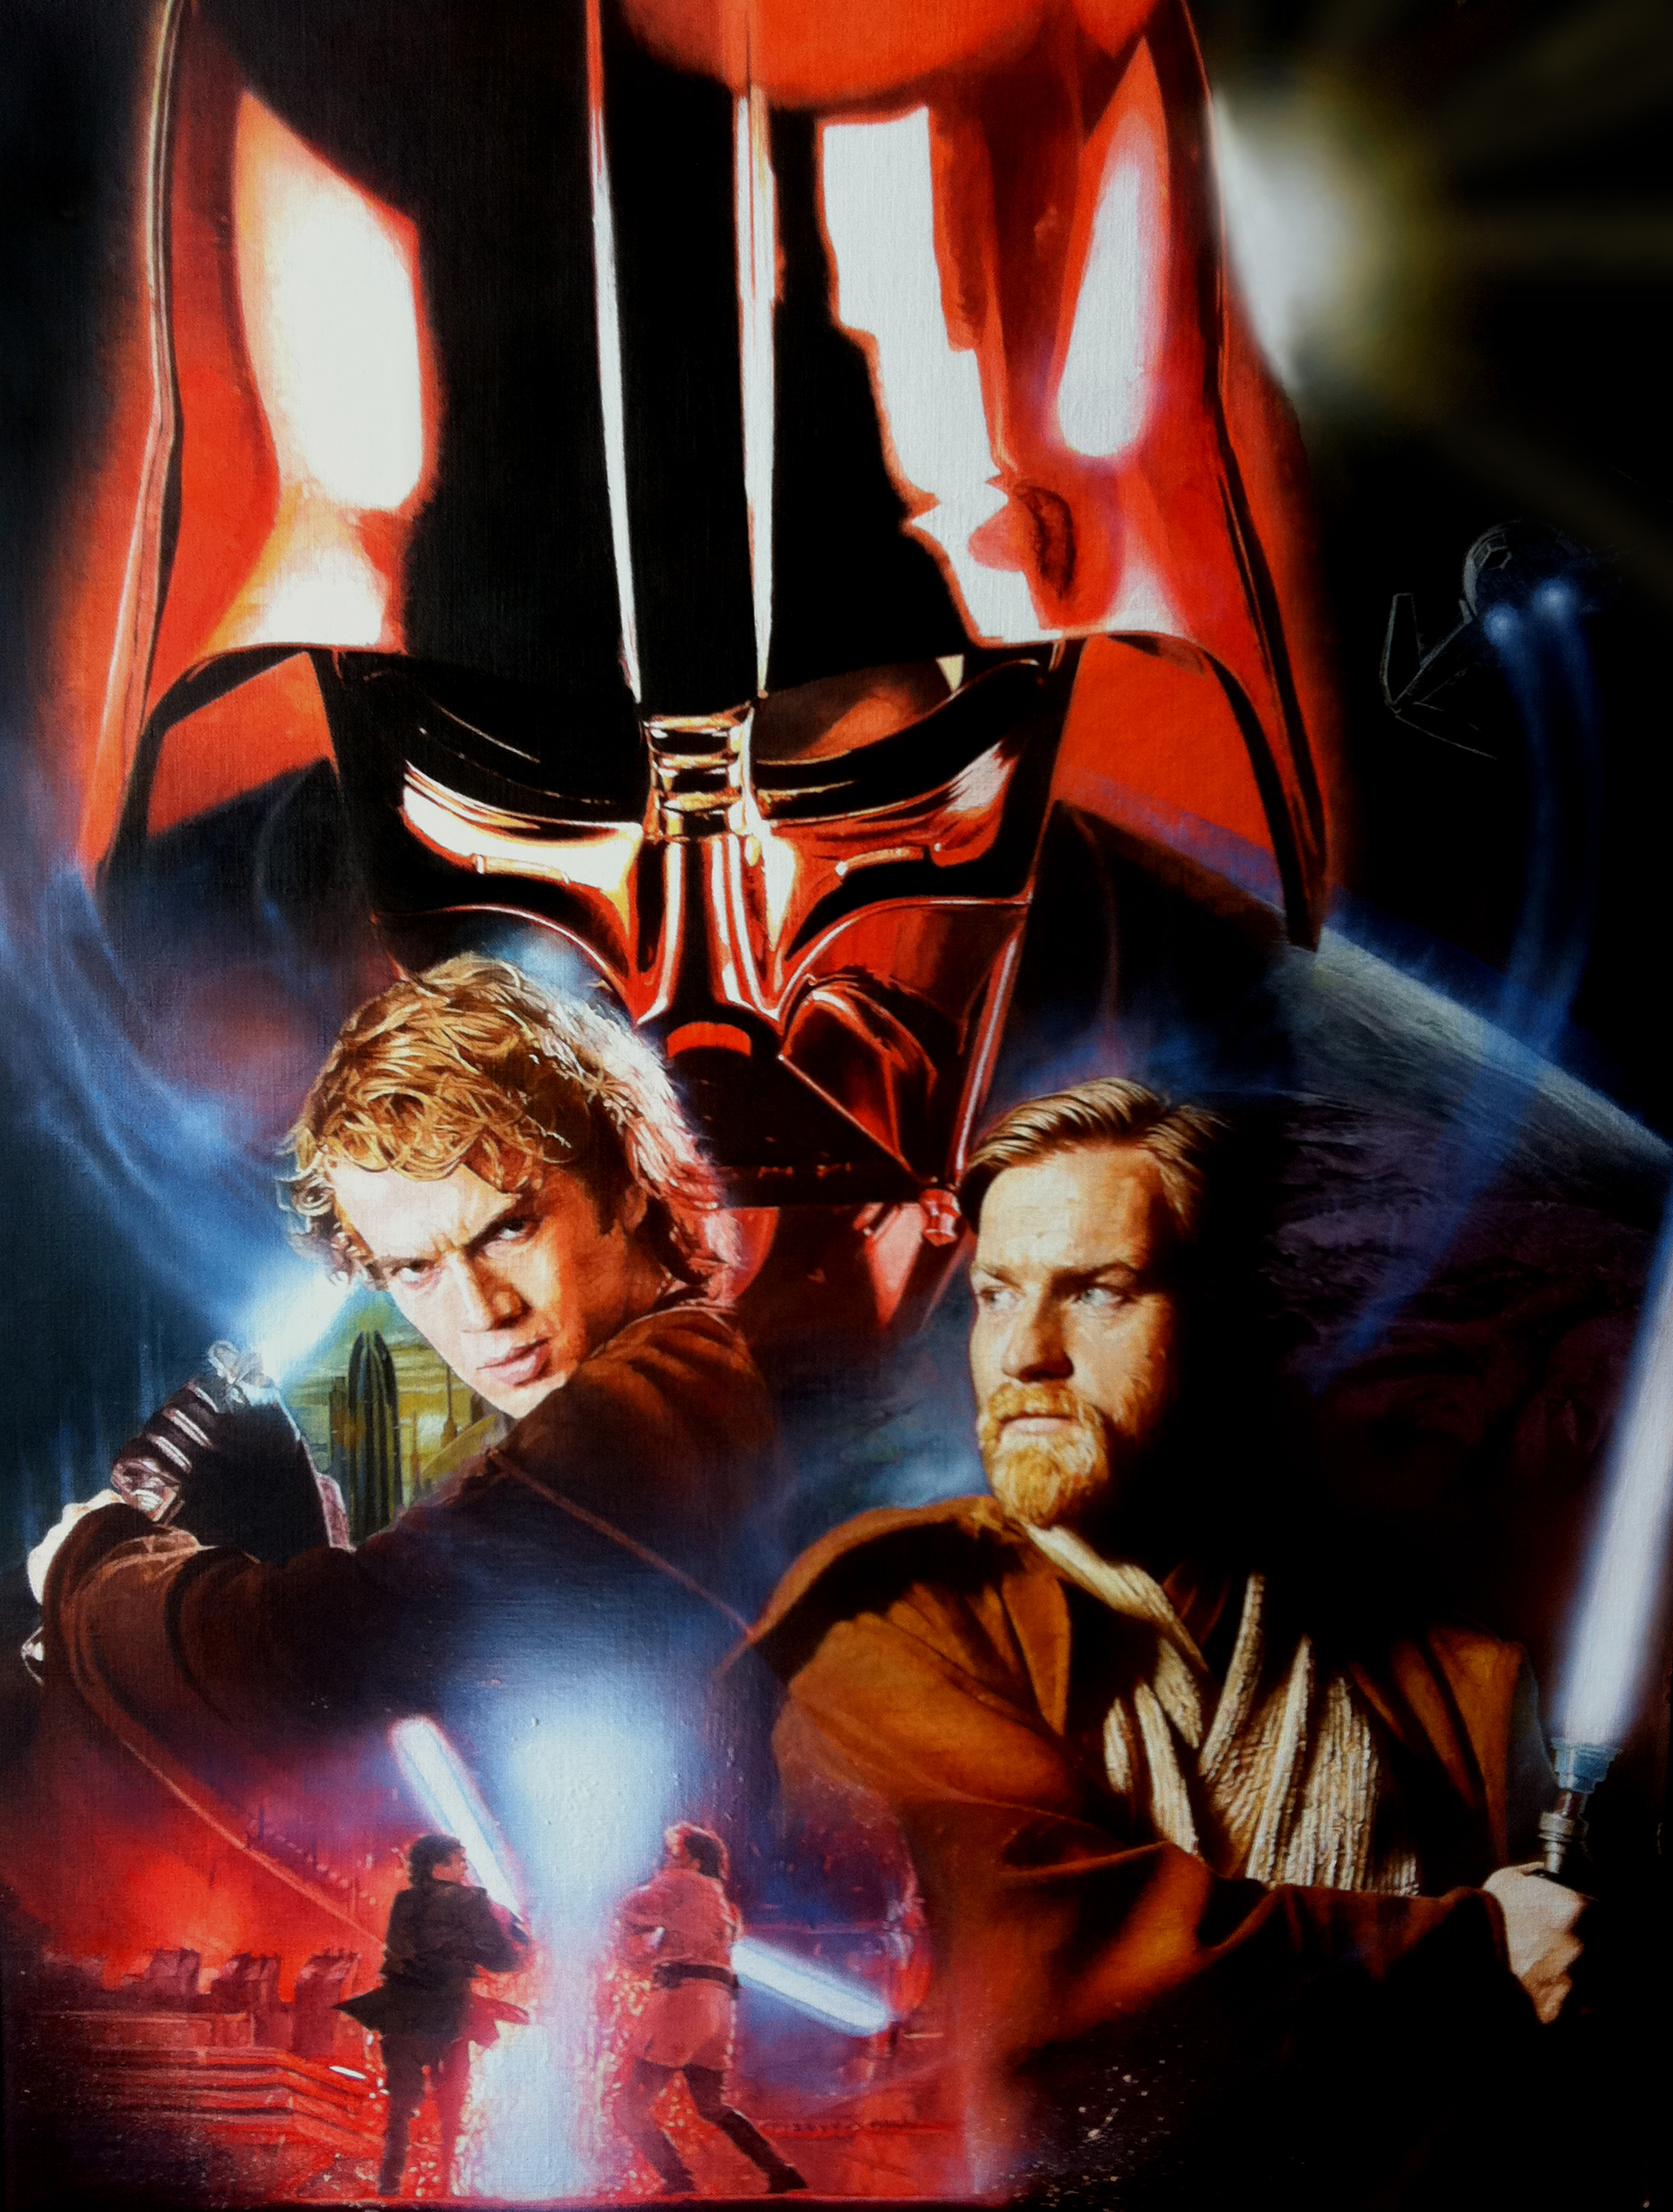 Star Wars Revenge of the Sith hand painted movie poster